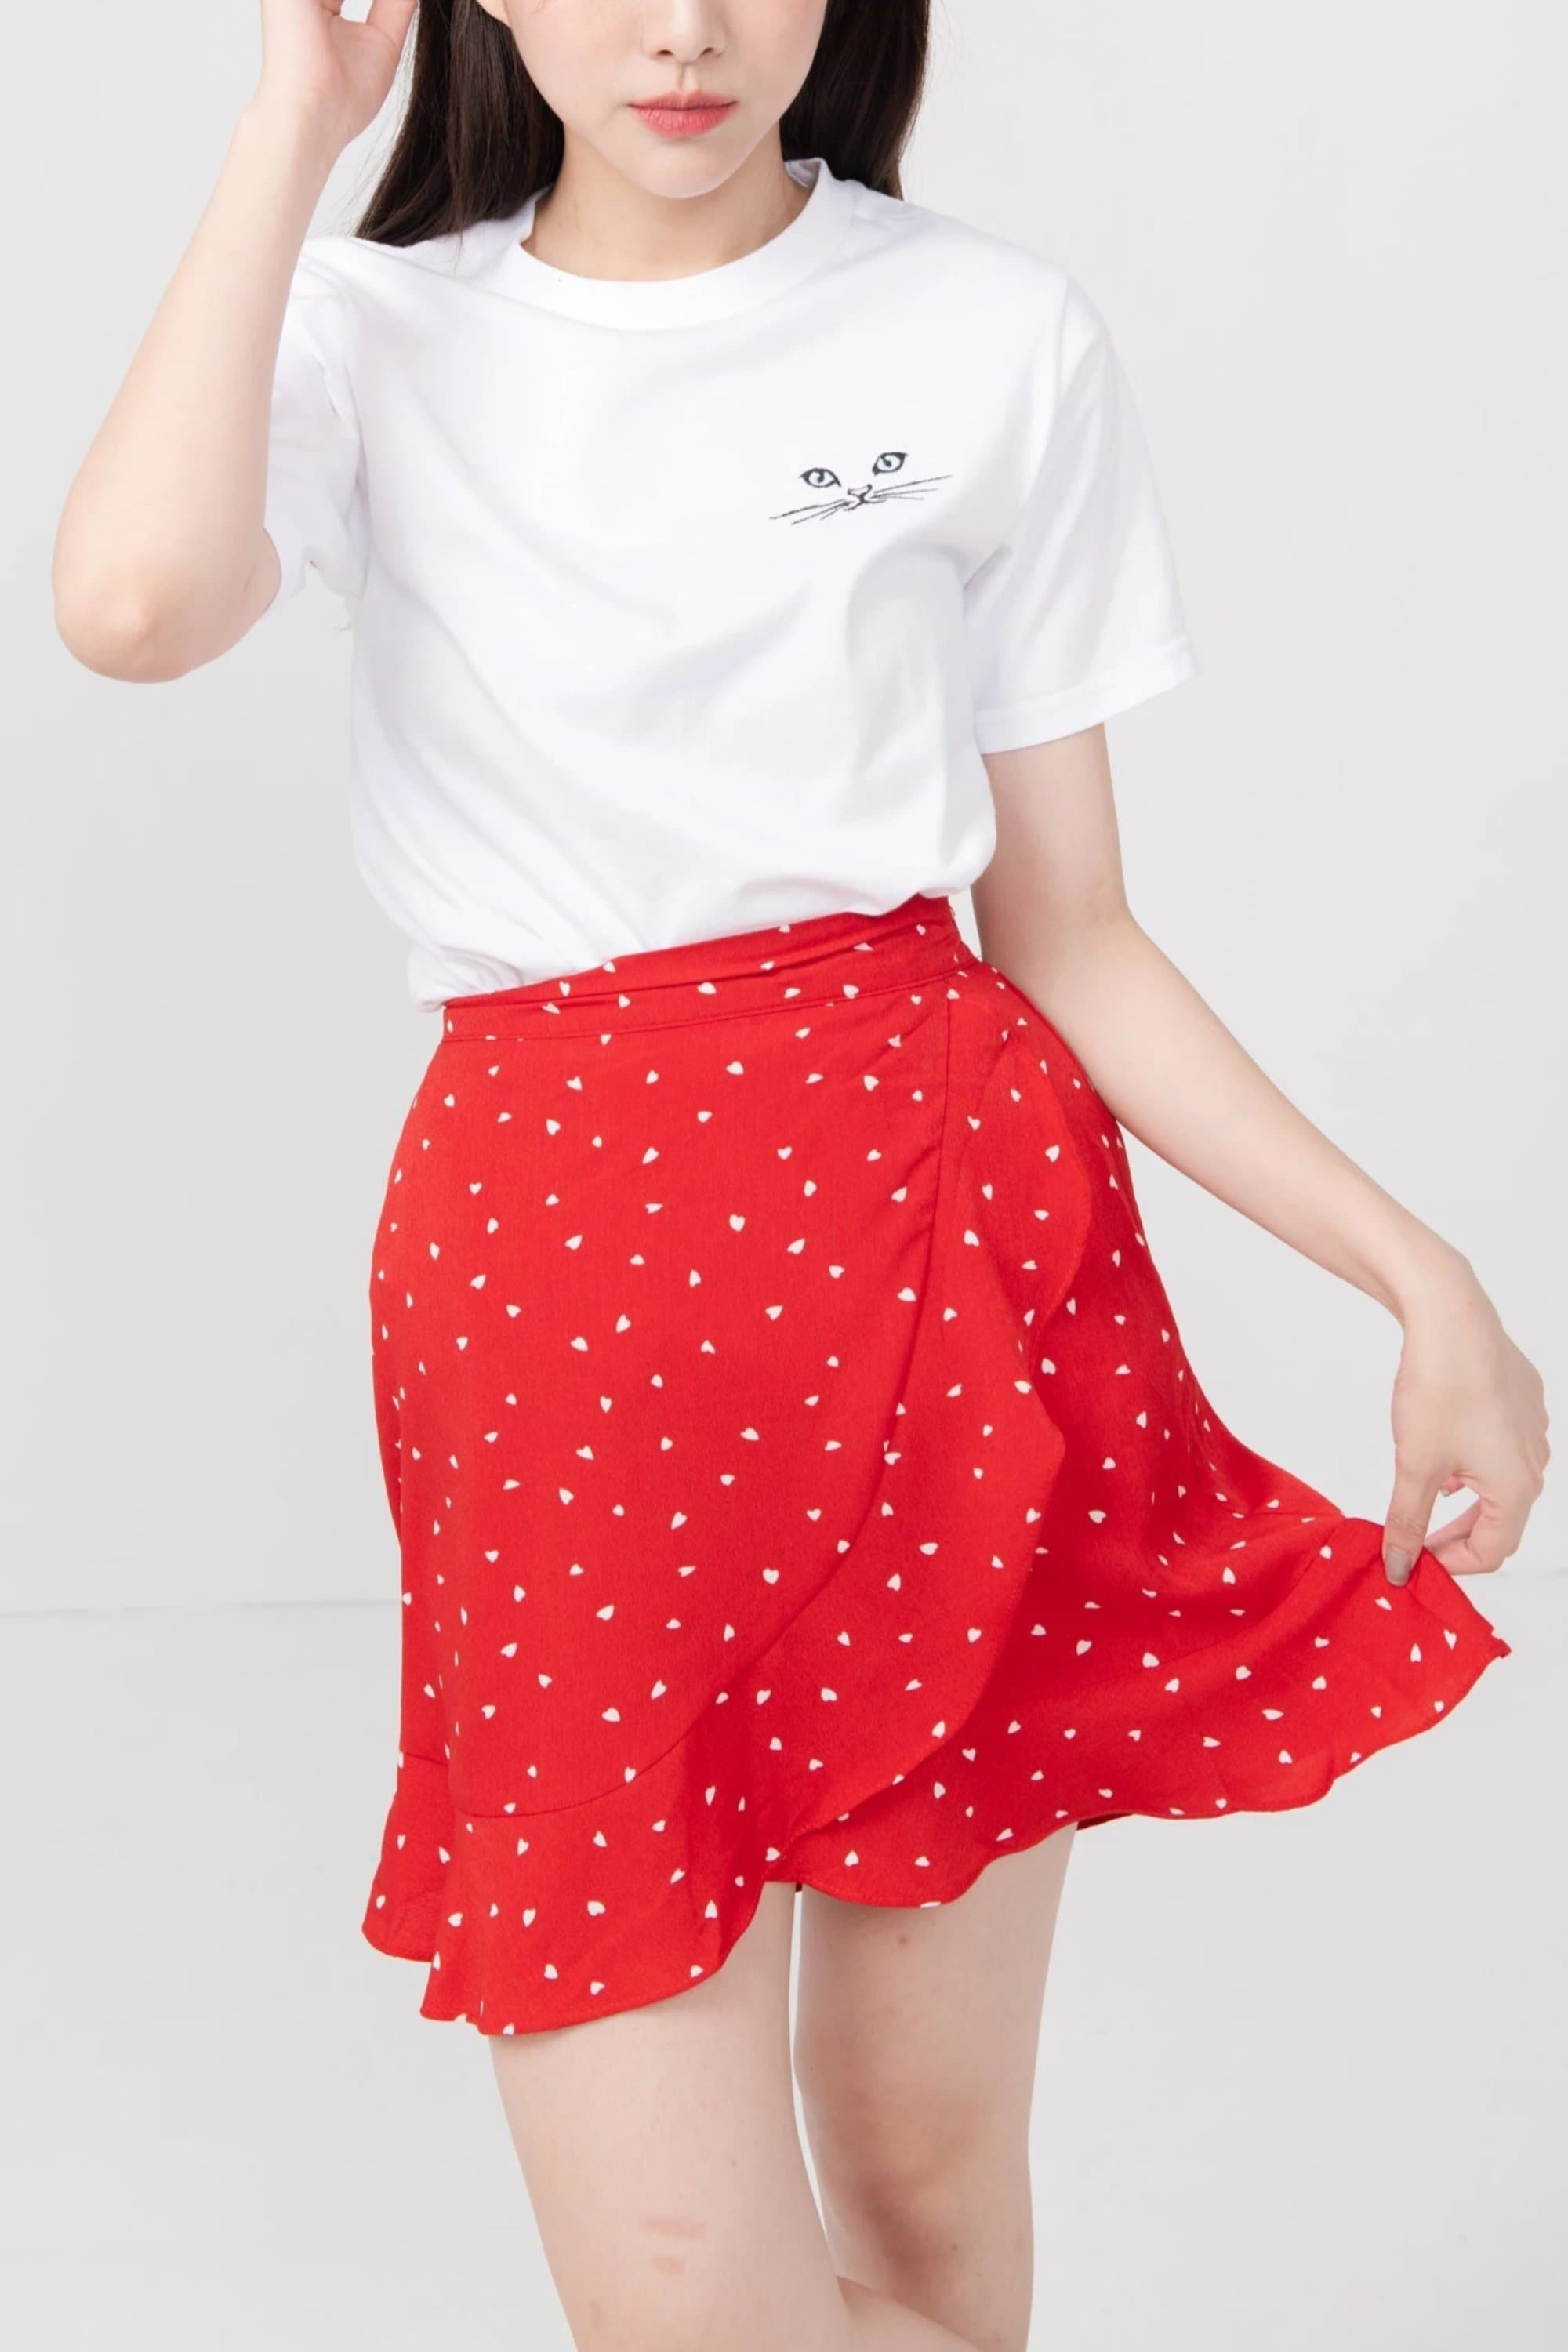 MyAleshia Little Hearts Red Skirt